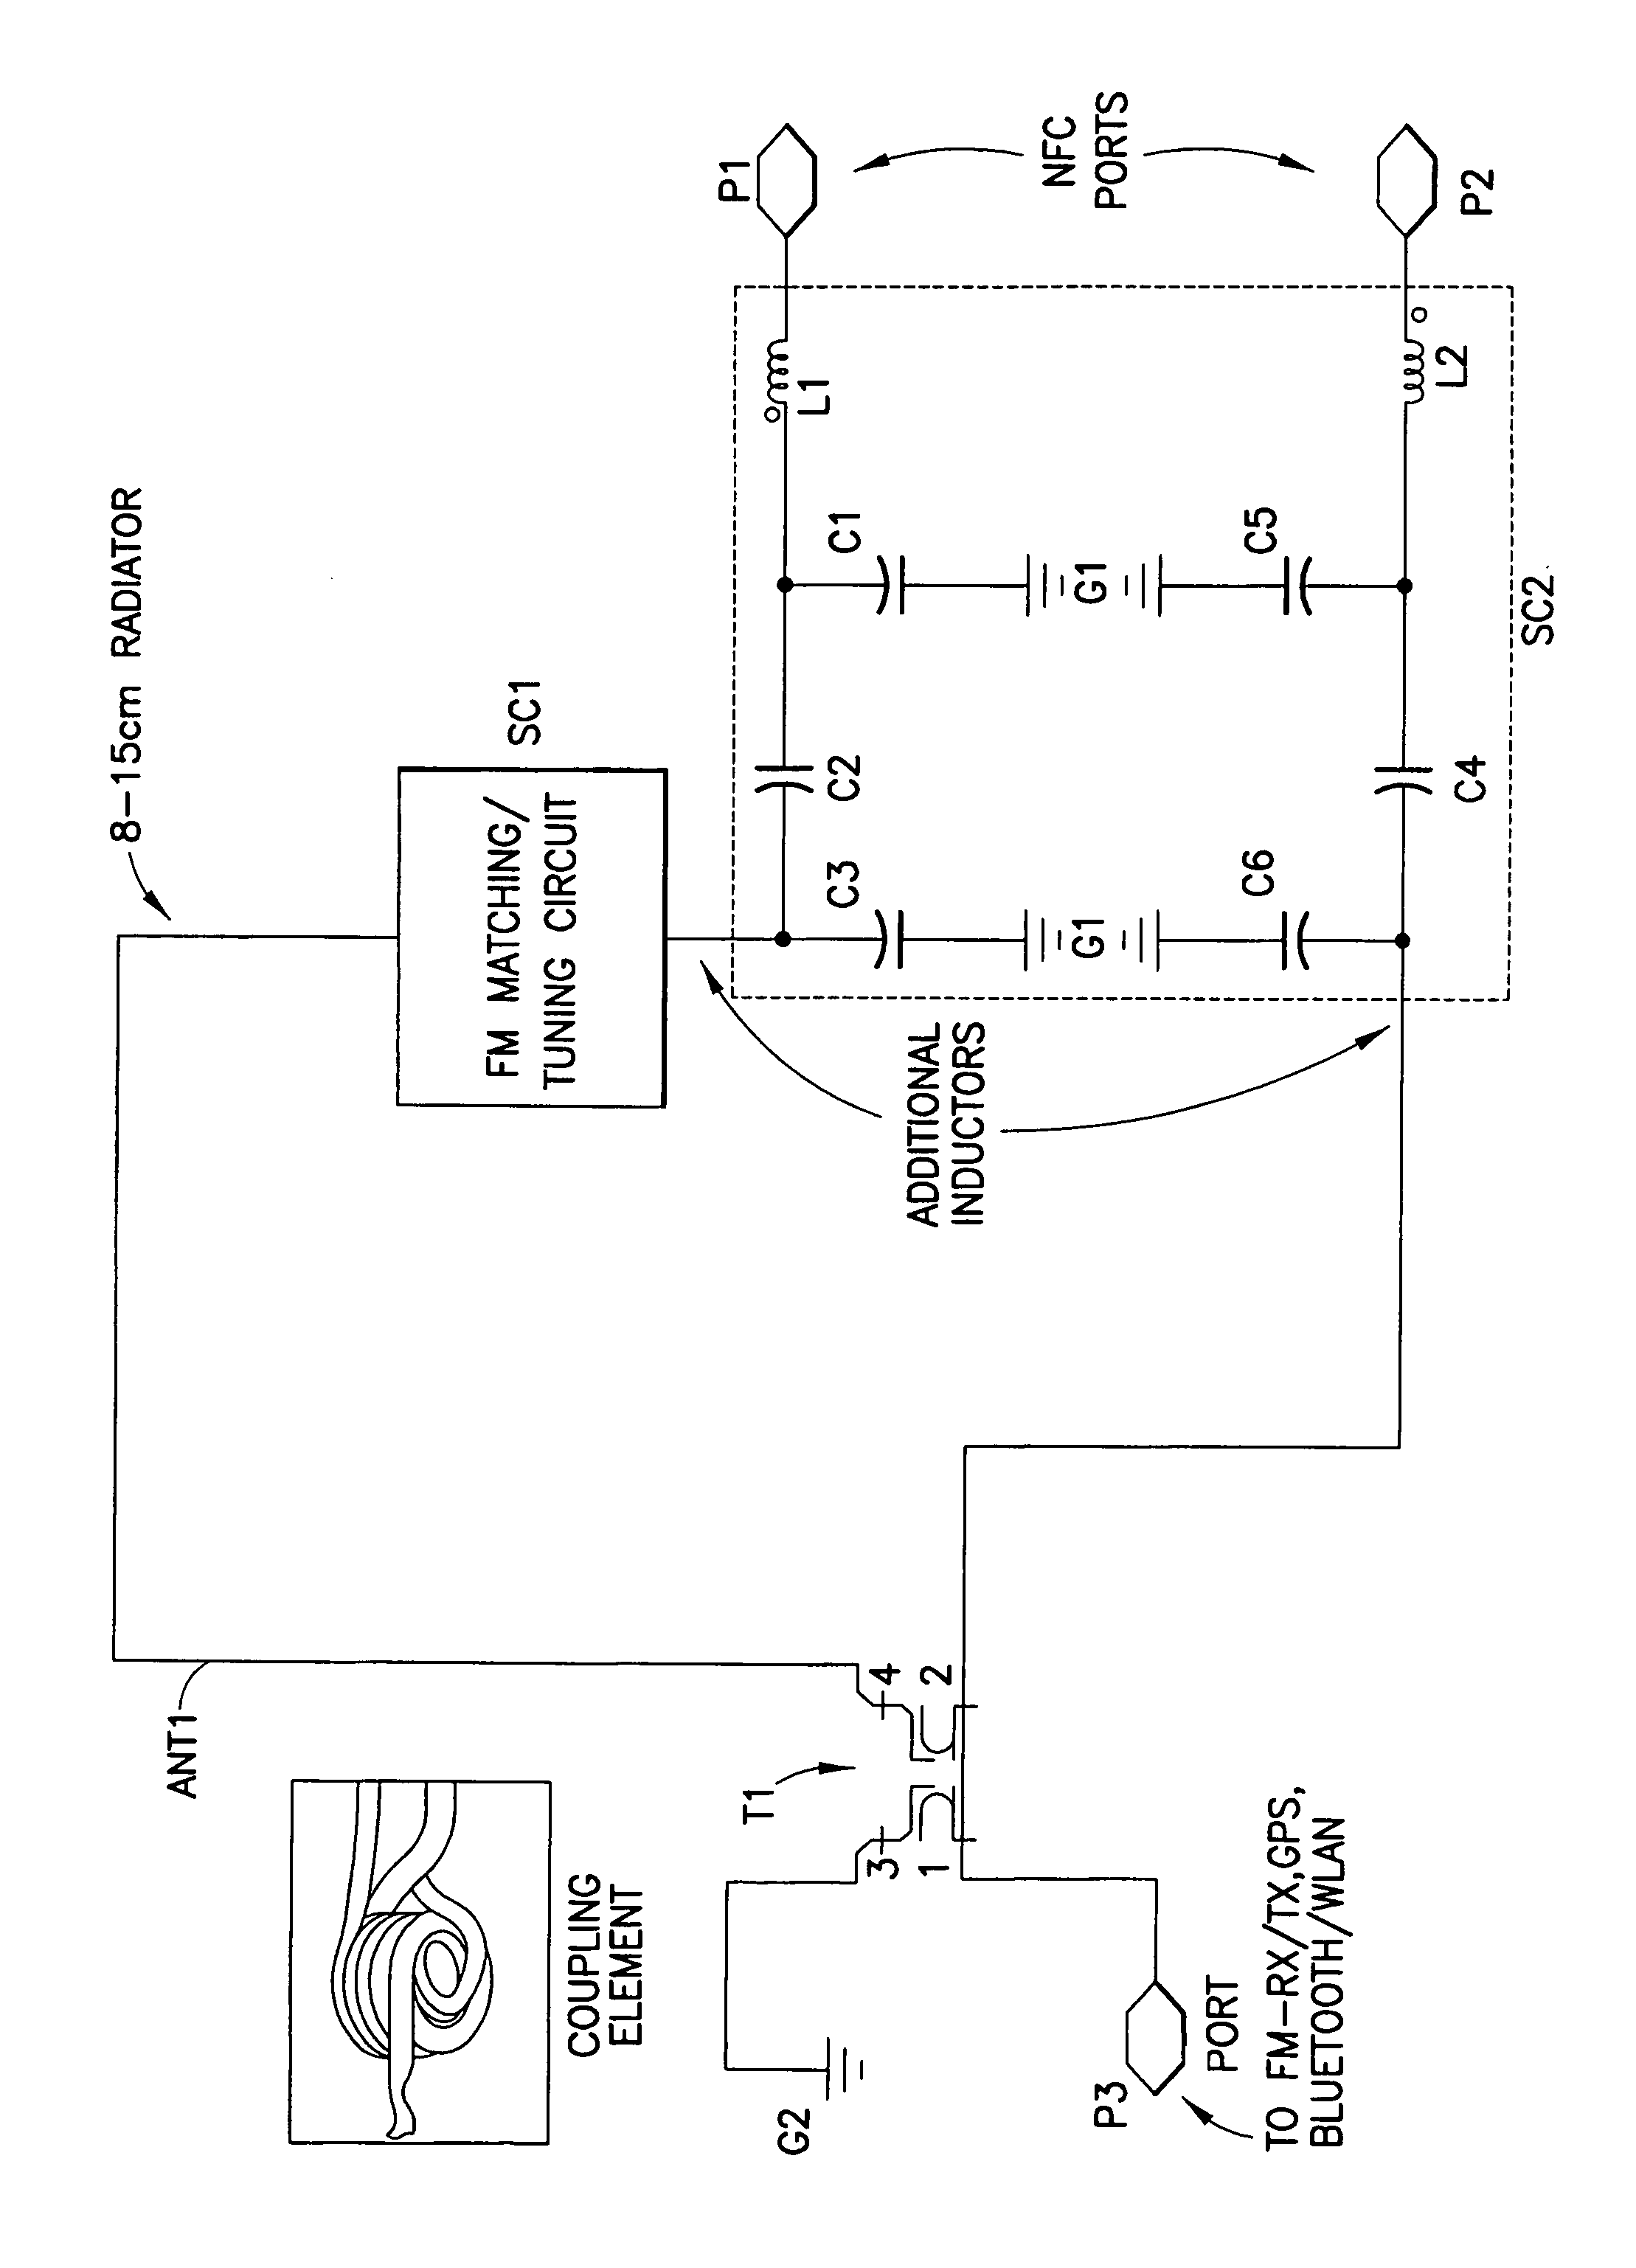 Patent Us8344959 Multiprotocol Antenna For Wireless Systems Block Diagram An Fm Transmitter Using Indirect Is Attached What Drawing